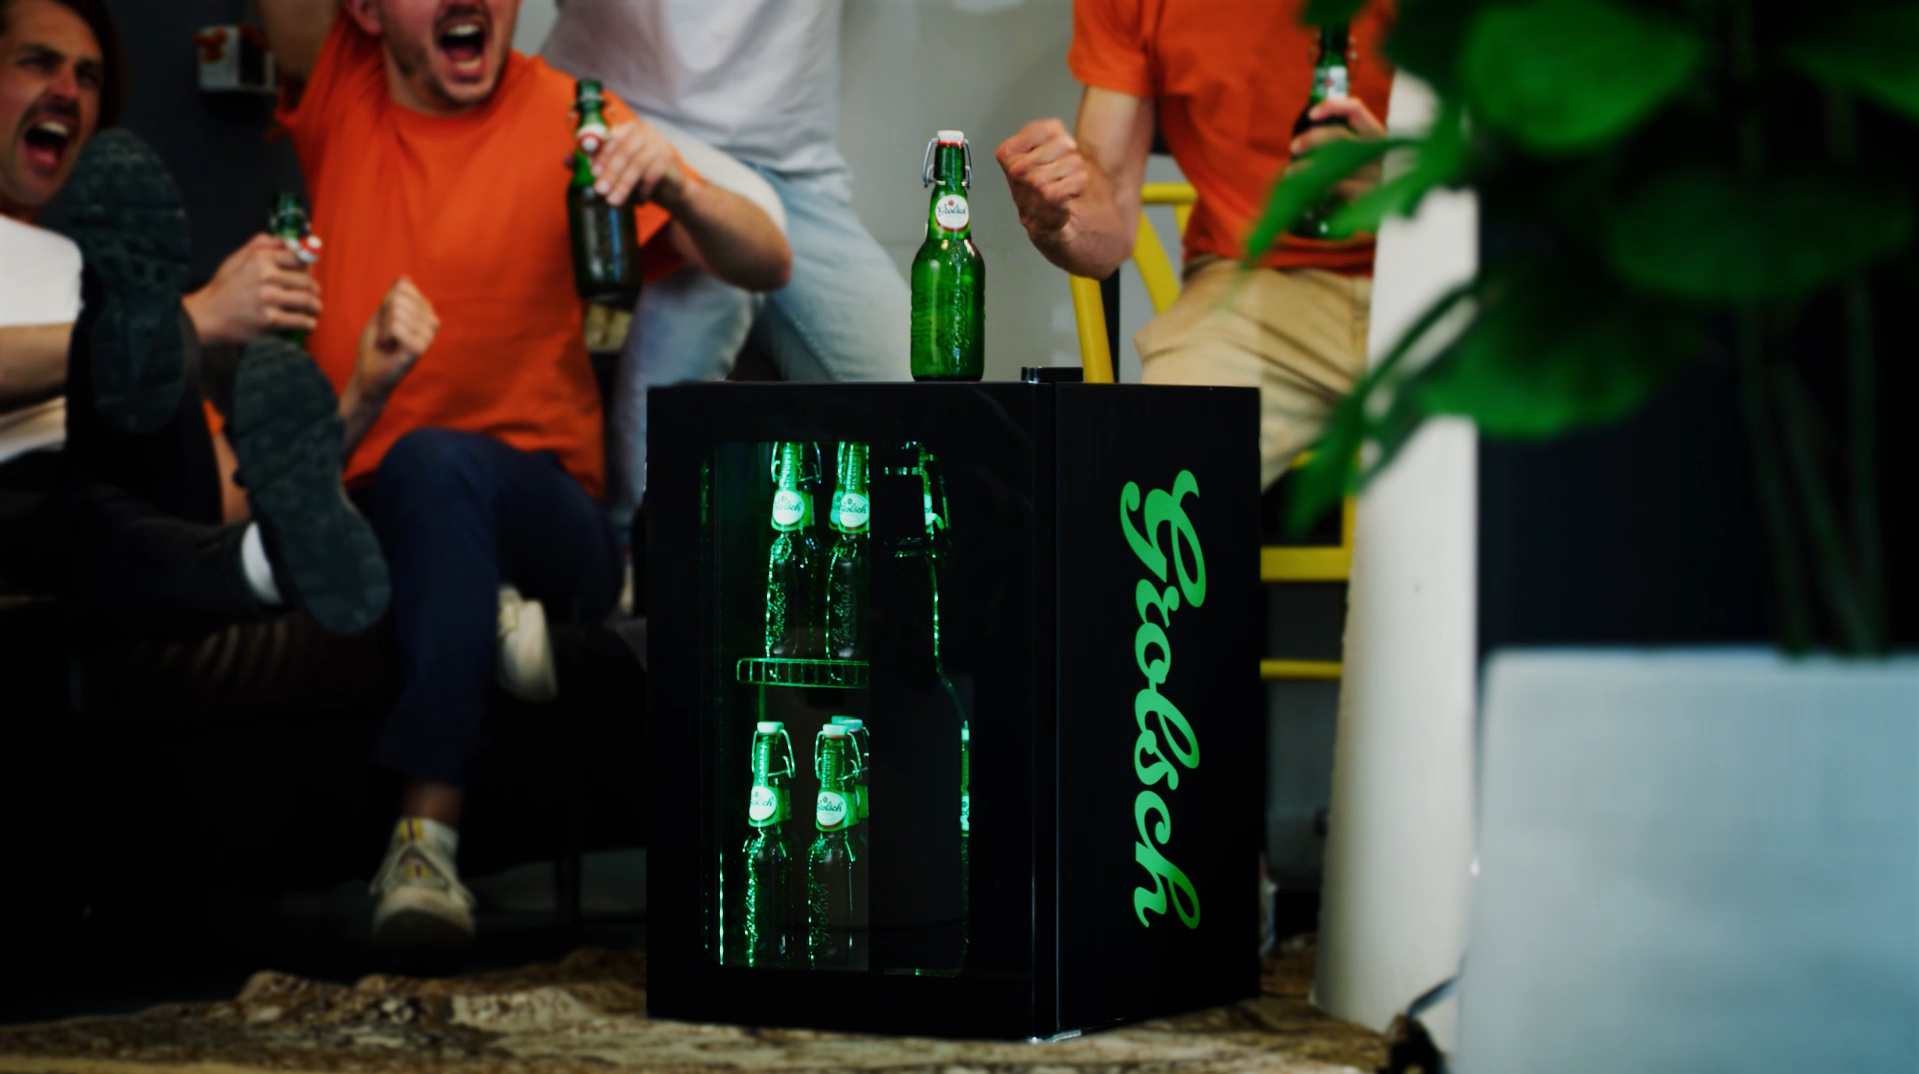 Grolsch provides cold beer within reach during European Football Championship